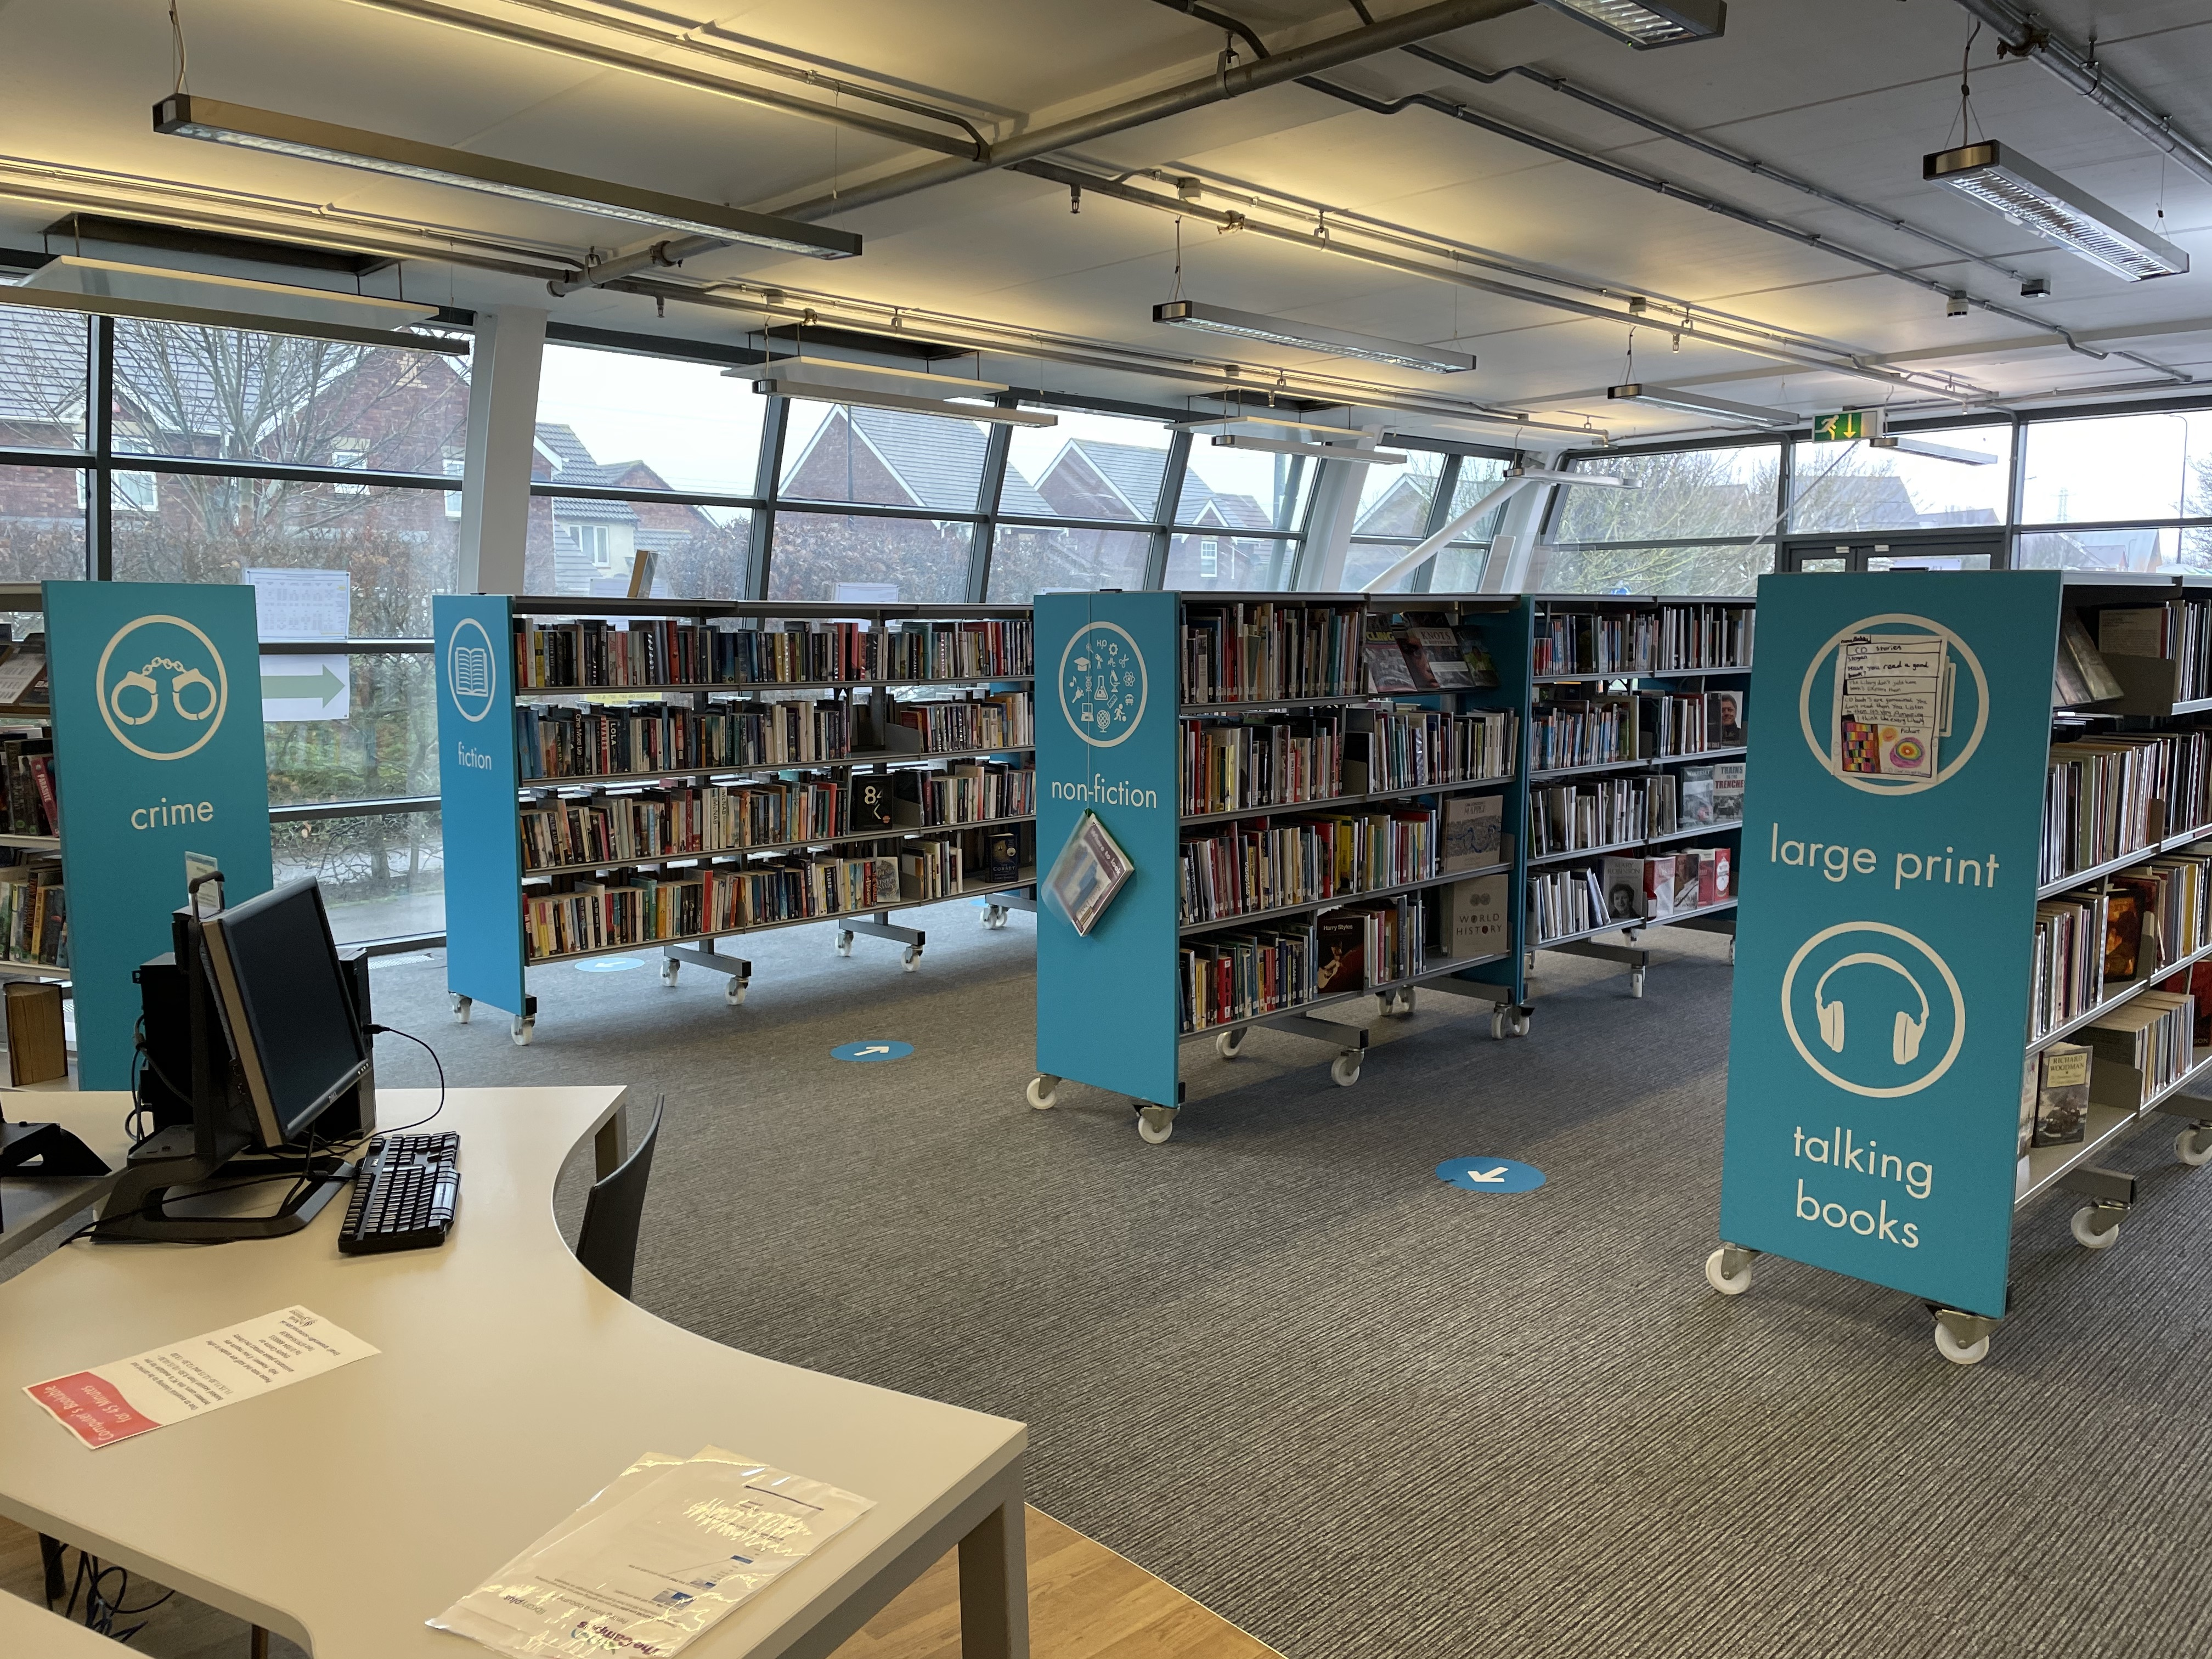 An interior image of the Campus library, with bright blue shelves and books and grey carpet